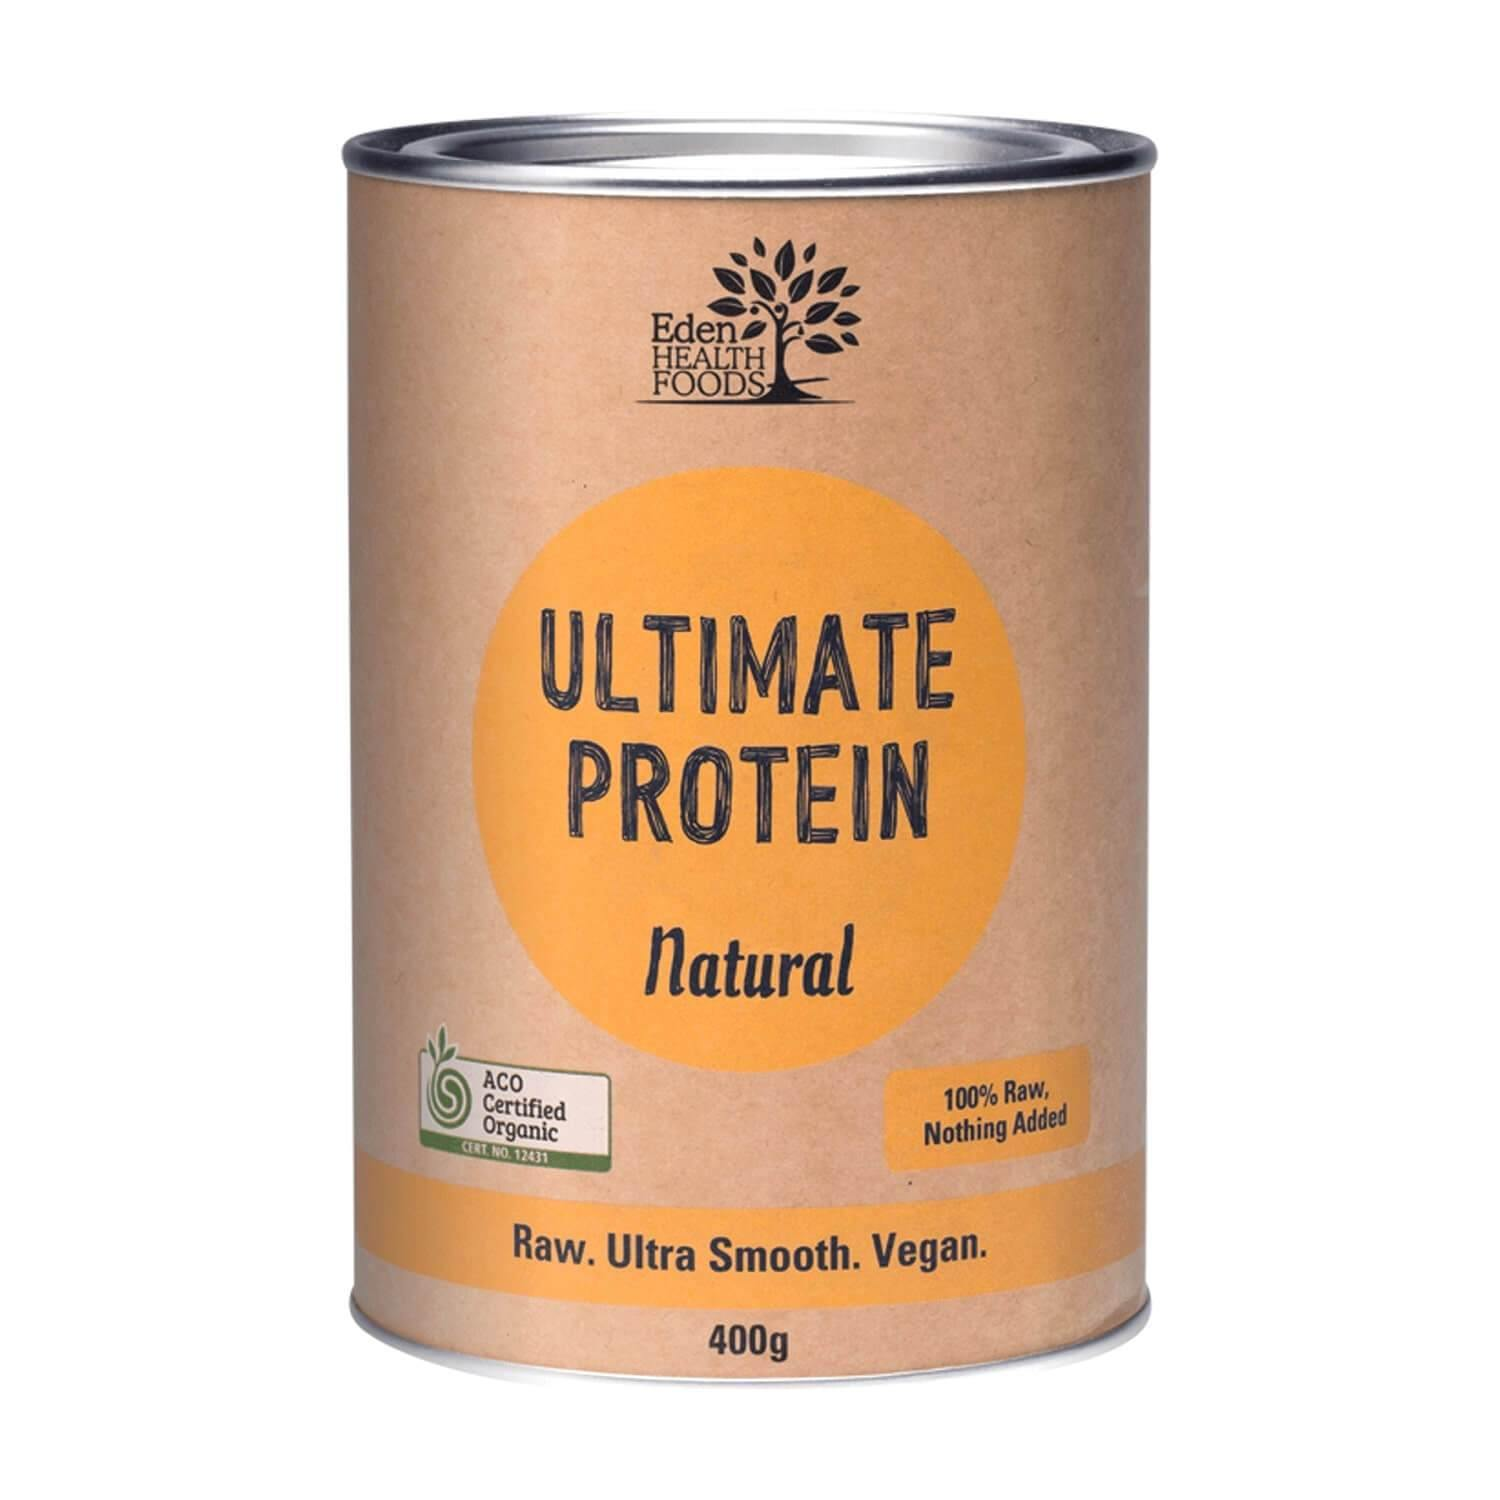 Eden Healthfoods Ultimate Natural Protein Powder 400g